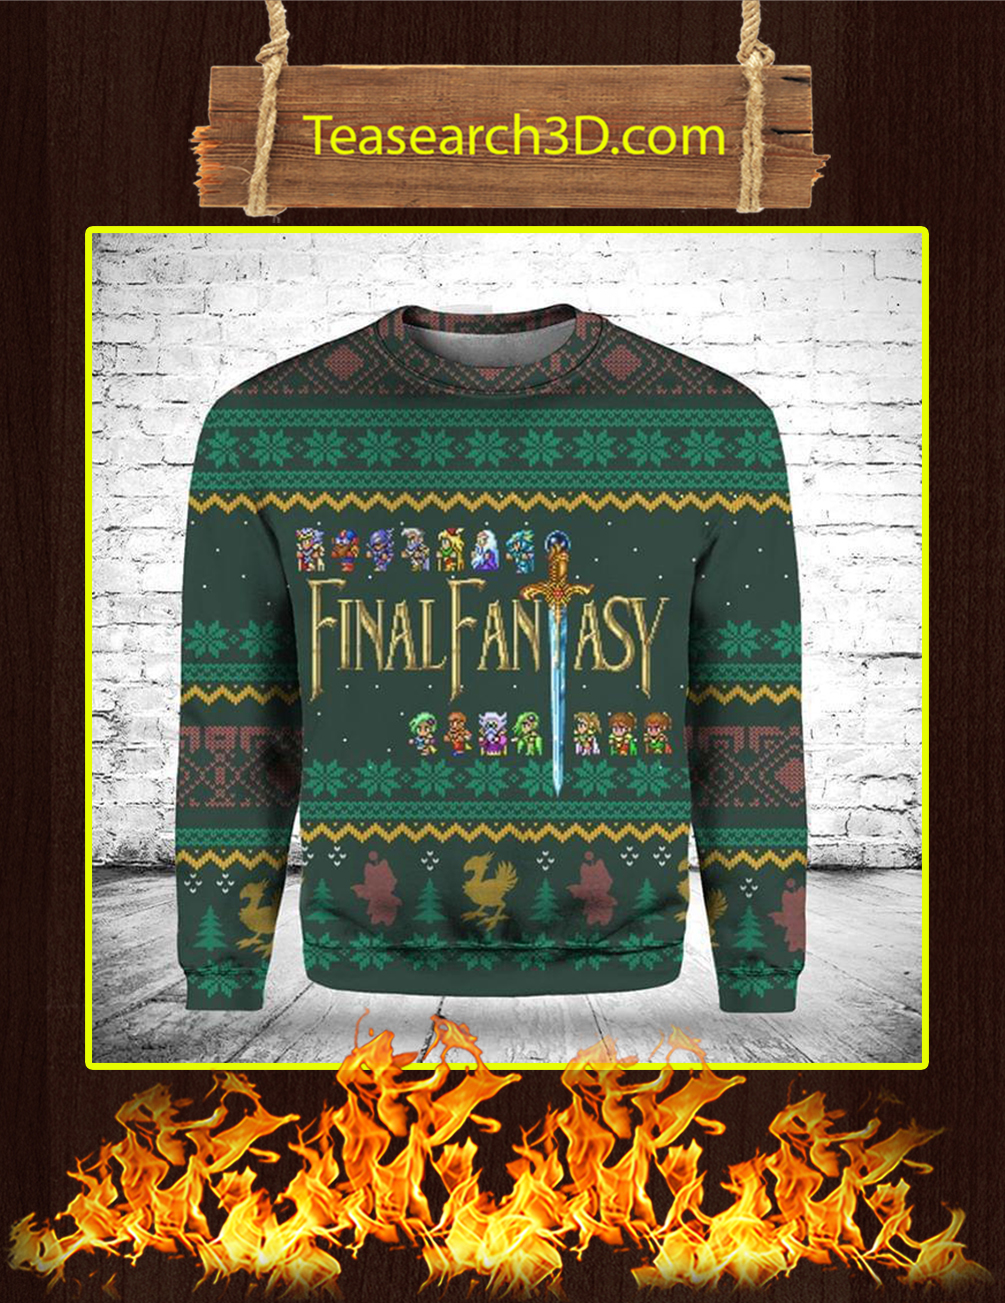 Final Fantasy 3D Ugly Christmas Sweater